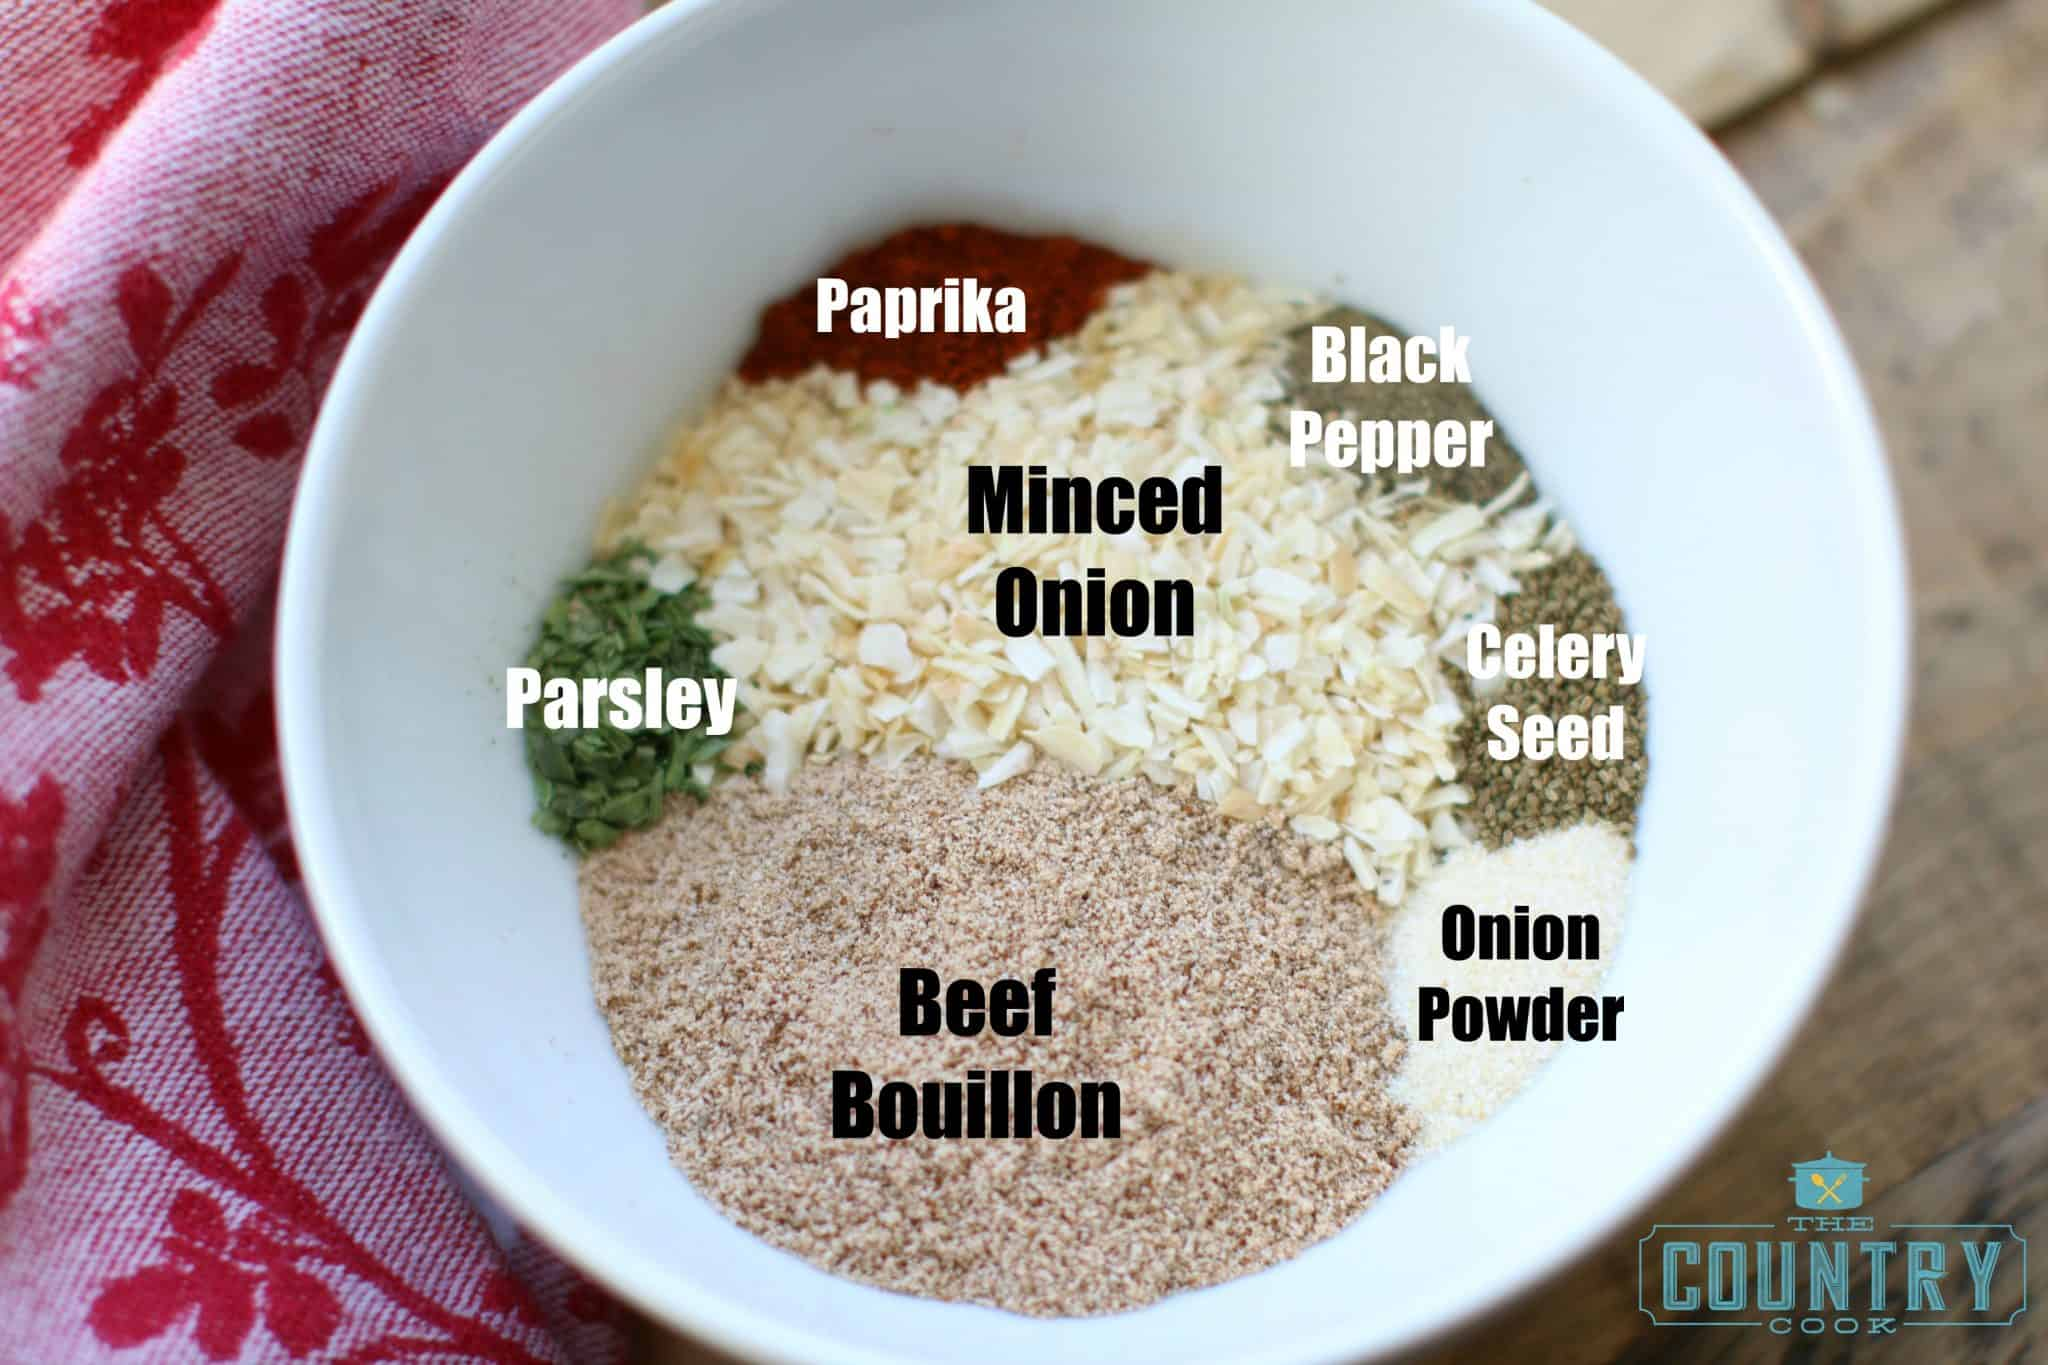 ingredients for onion soup mix in a white bowl with text above each ingredient to identify it.